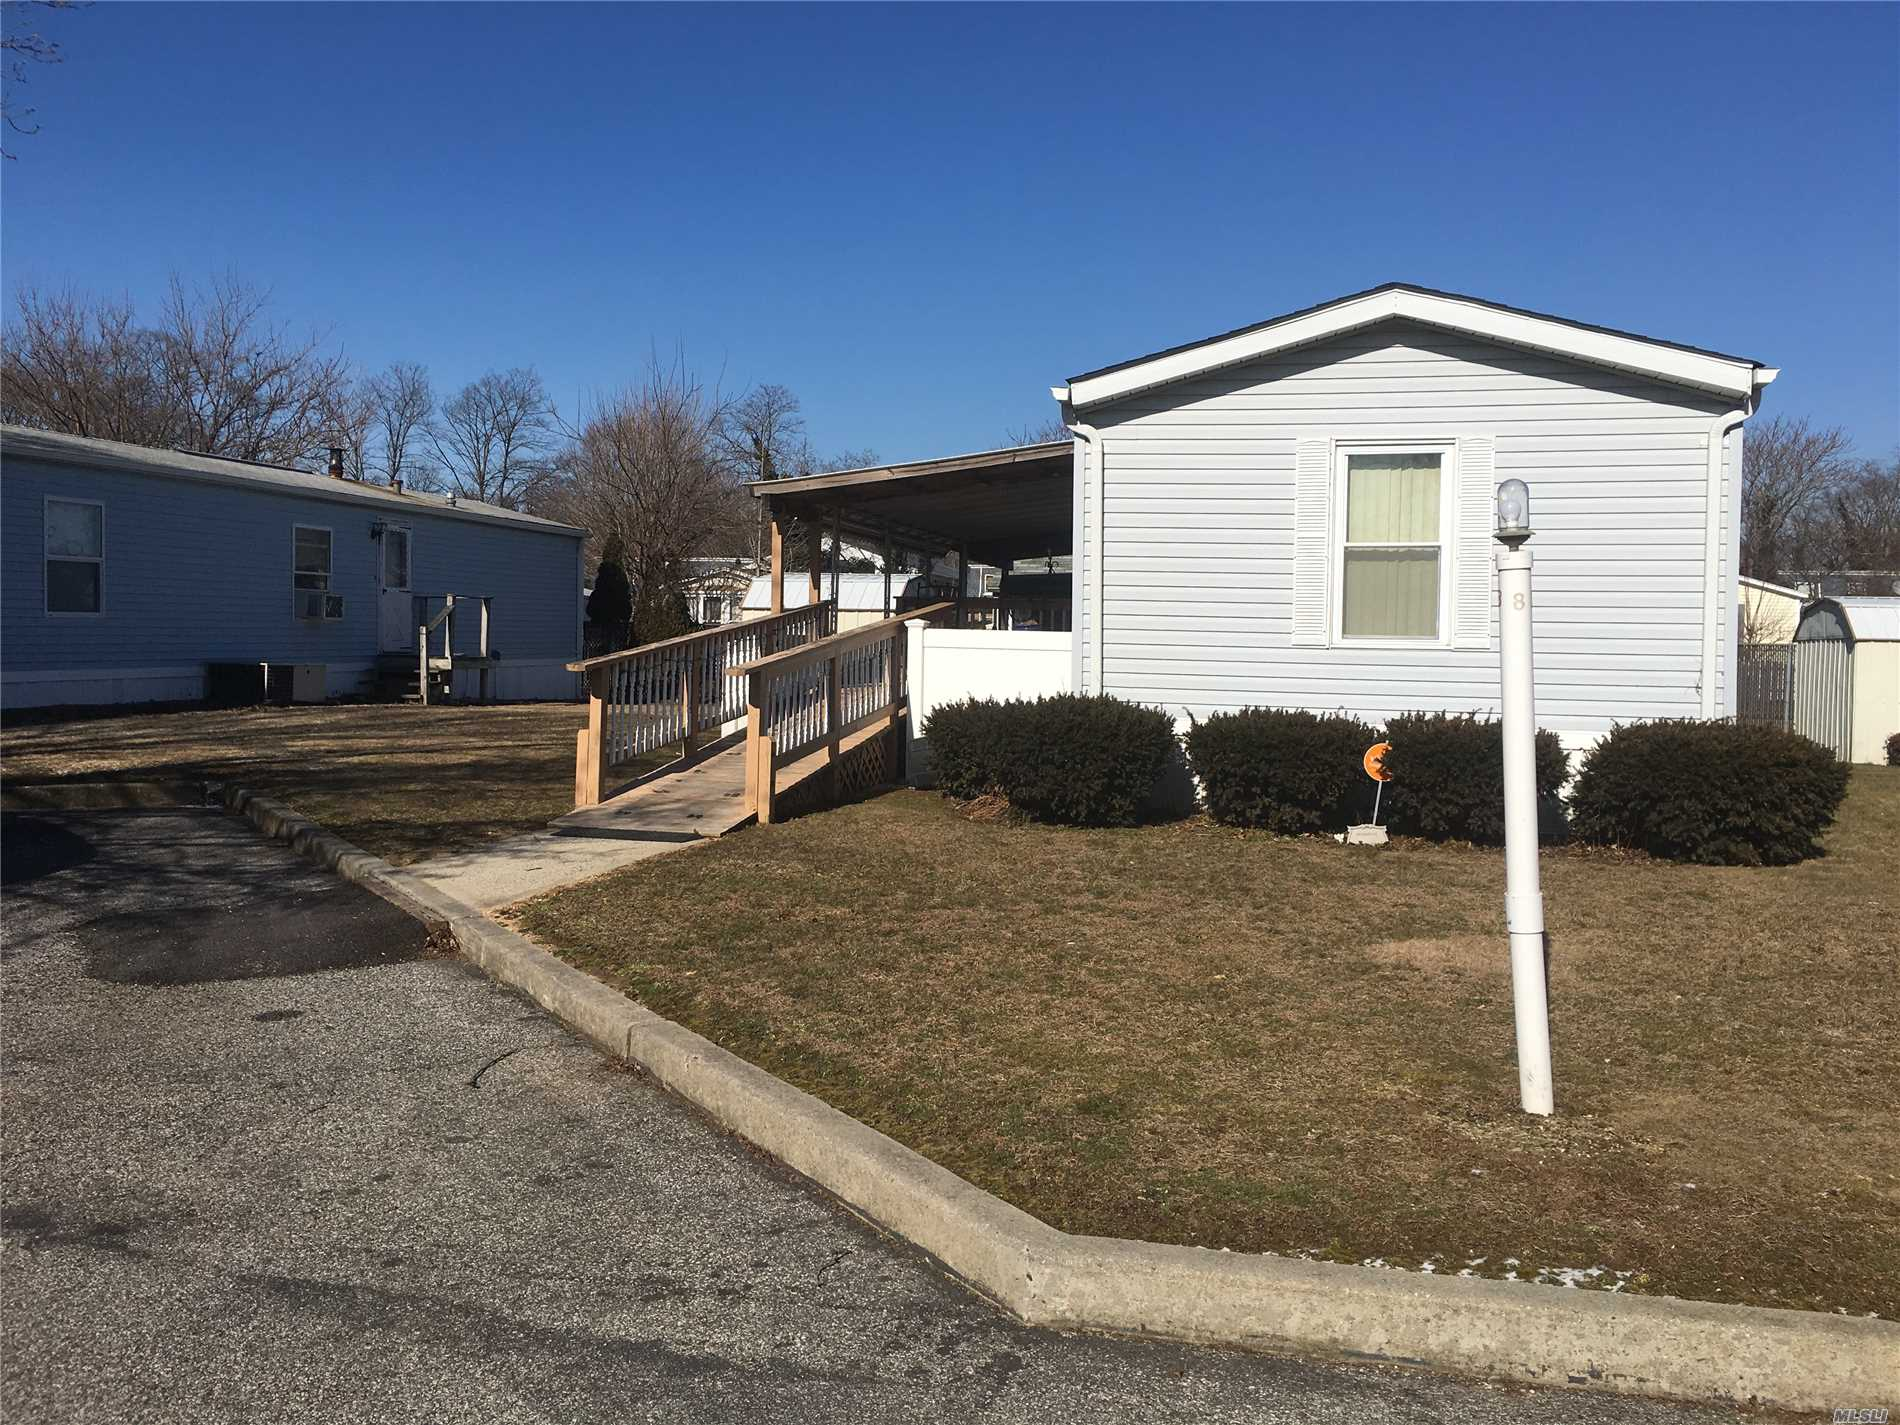 Quiet Location Convenient To All. Fenced Property- Nice Covered Patio With Yard - Fenced Area For Dog - 2 Sheds Affordable Living. Great Neighbors.  Common Expense Monthly $850.00 W/Star $797.00 Includes: Land Rental, Taxes, Water, Garbage & Sewer